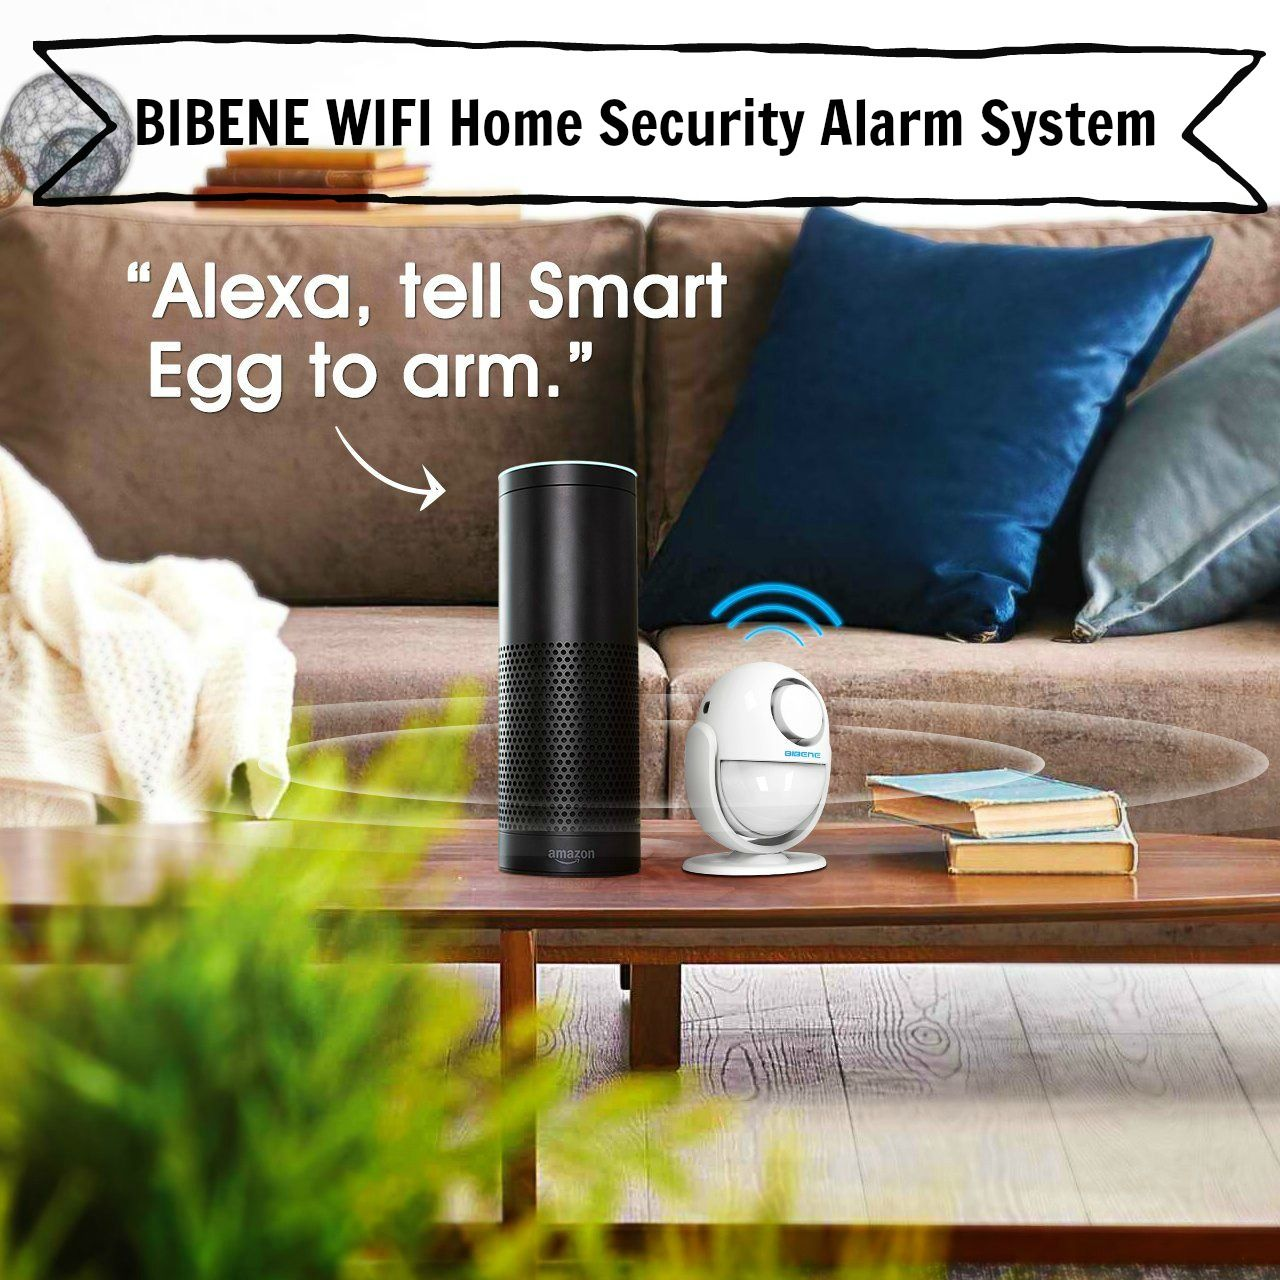 Diy Home Security Systems For Safety Peace Of Mind An Expandable Multi Zone Modular Burglar Alarm Bibene Wifi System View In Gallery